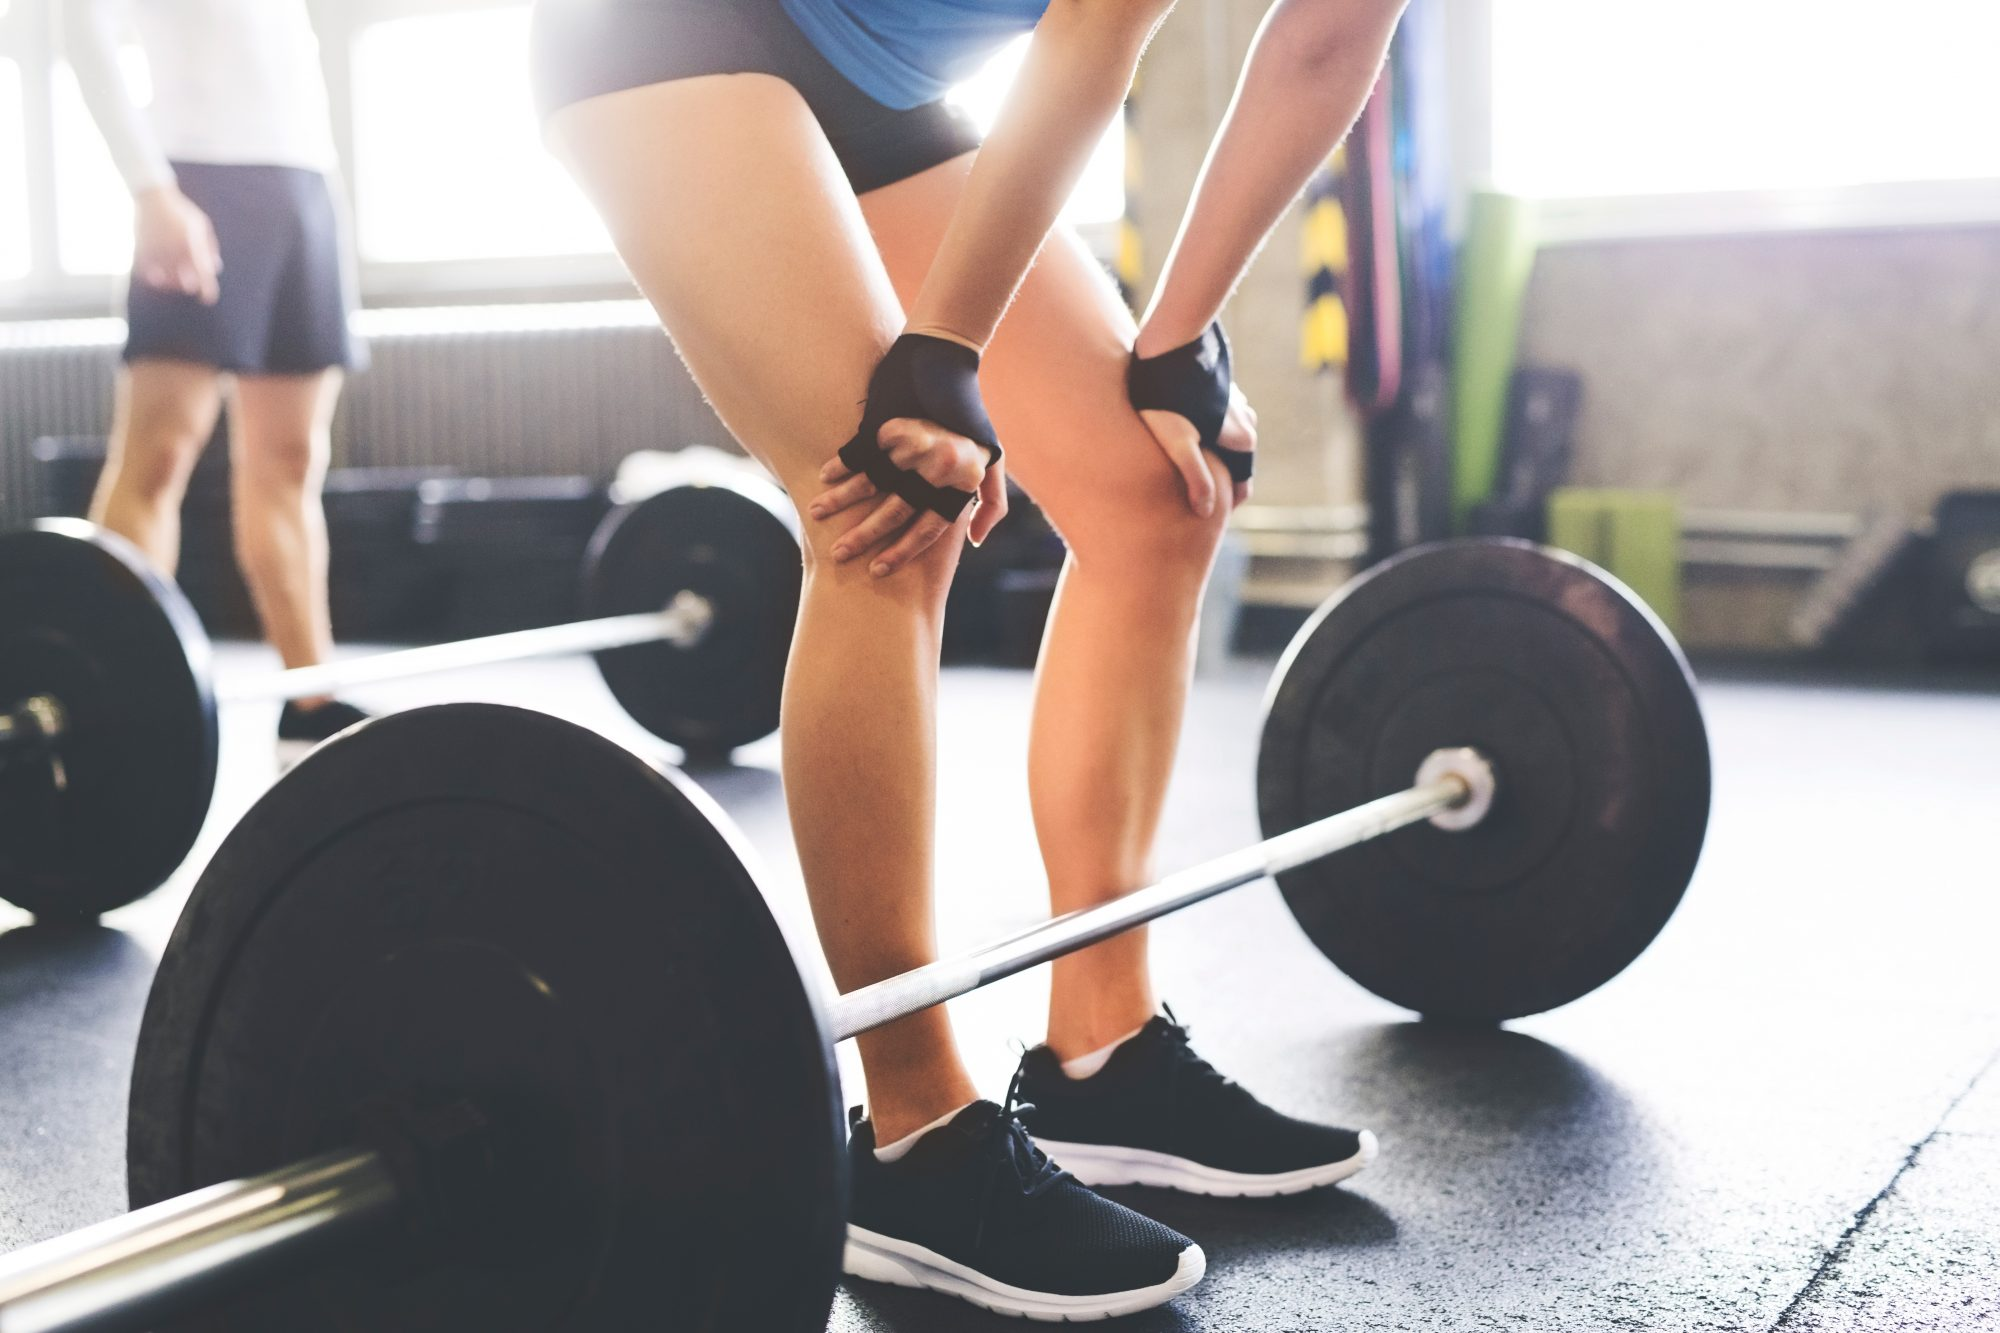 5 Amazing Things That Happen to Your Body When You Start Lifting Weights